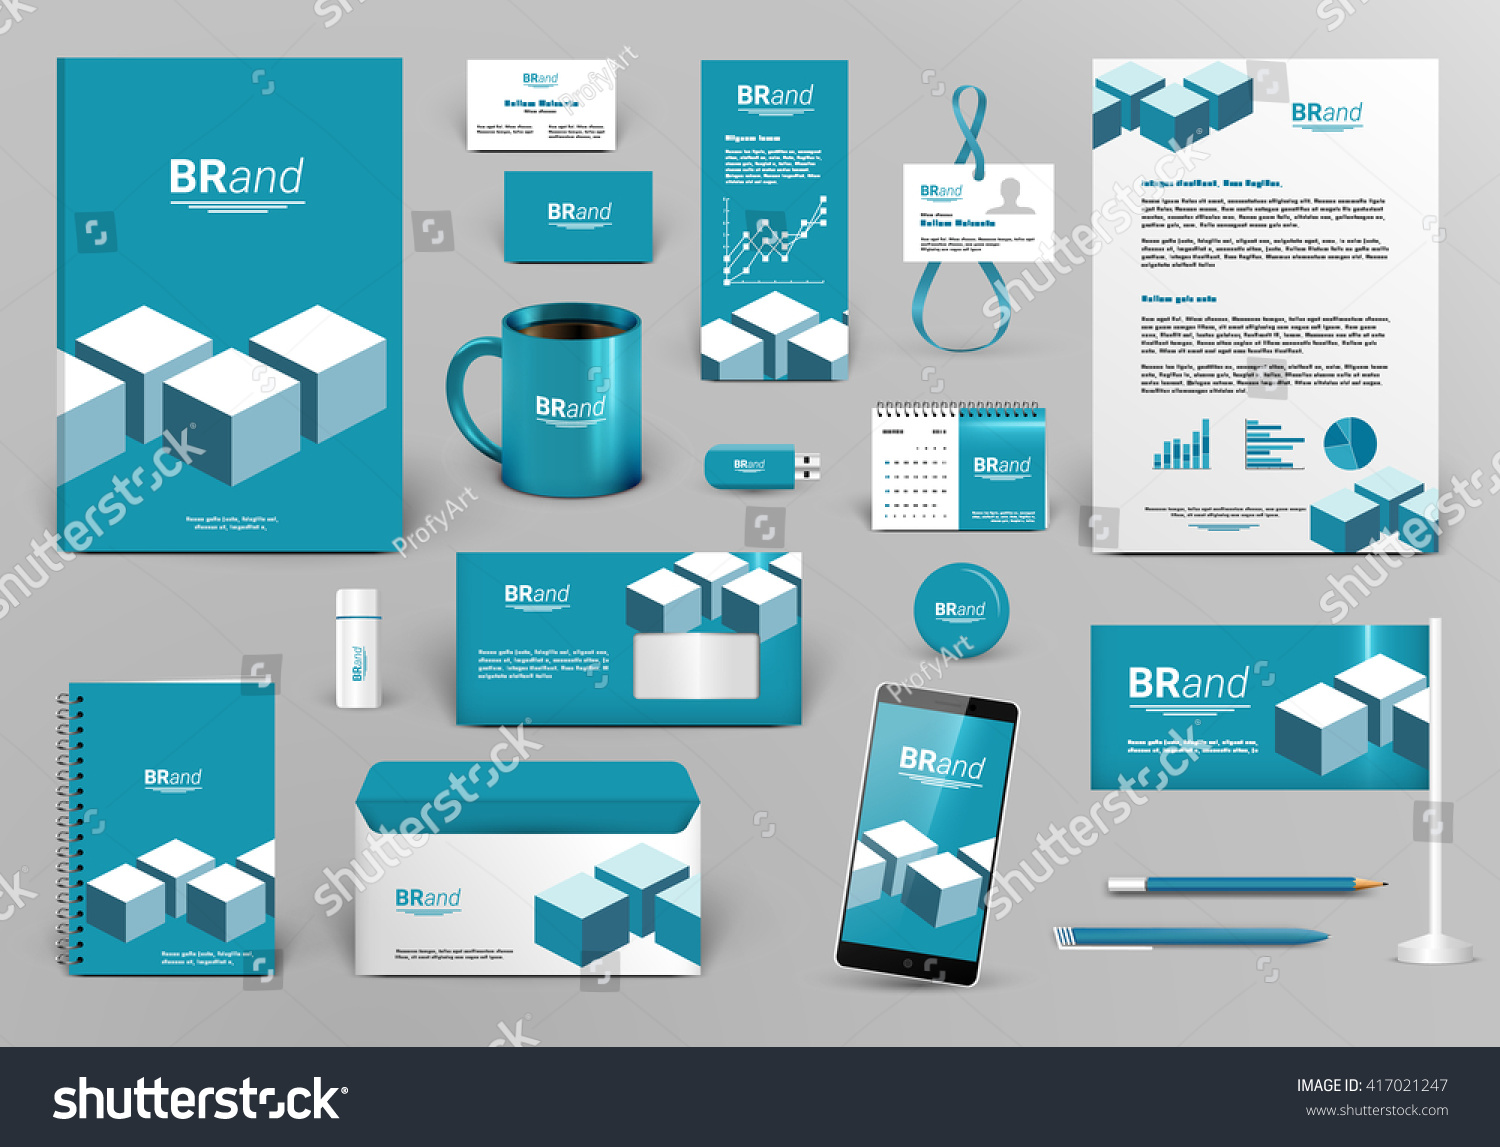 professional blue branding design kit cubes stock vector  professional blue branding design kit cubes for real estate investment corporate identity template